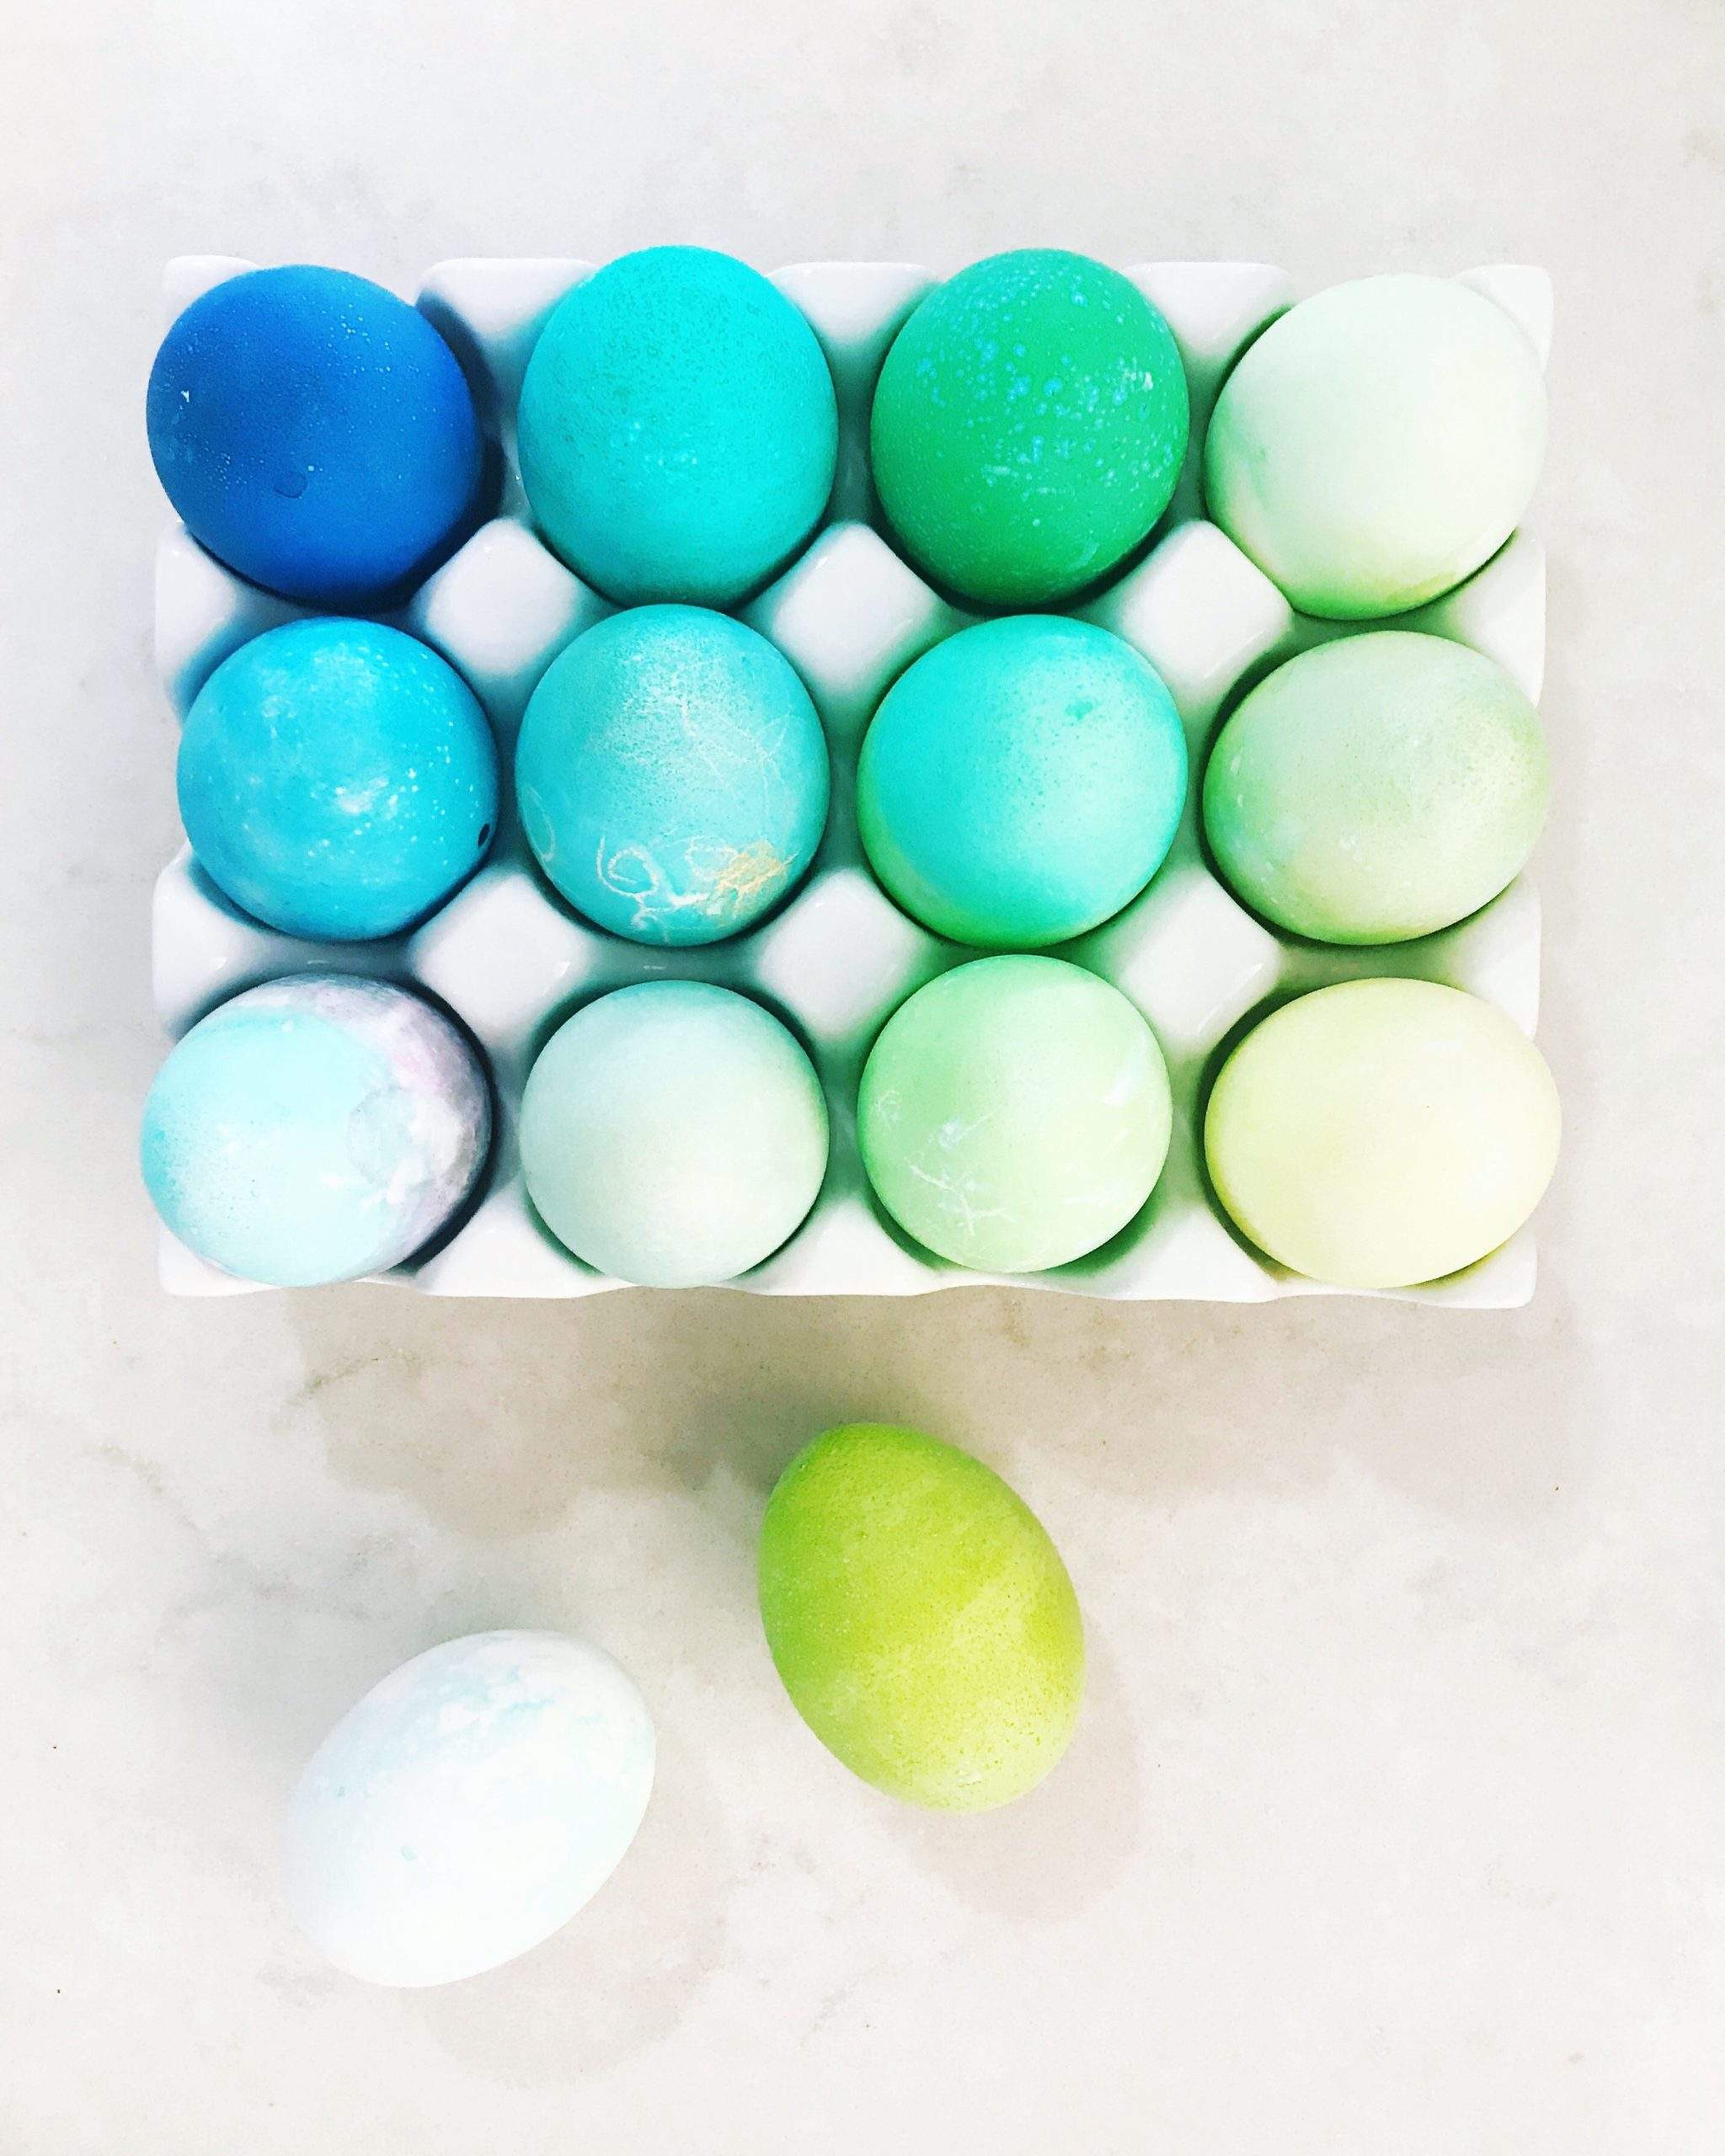 Colorful Easter Eggs made with Homemade Easter Egg Dye. All you need is 3 basic pantry ingredients to make DIY Easter Egg Dye.